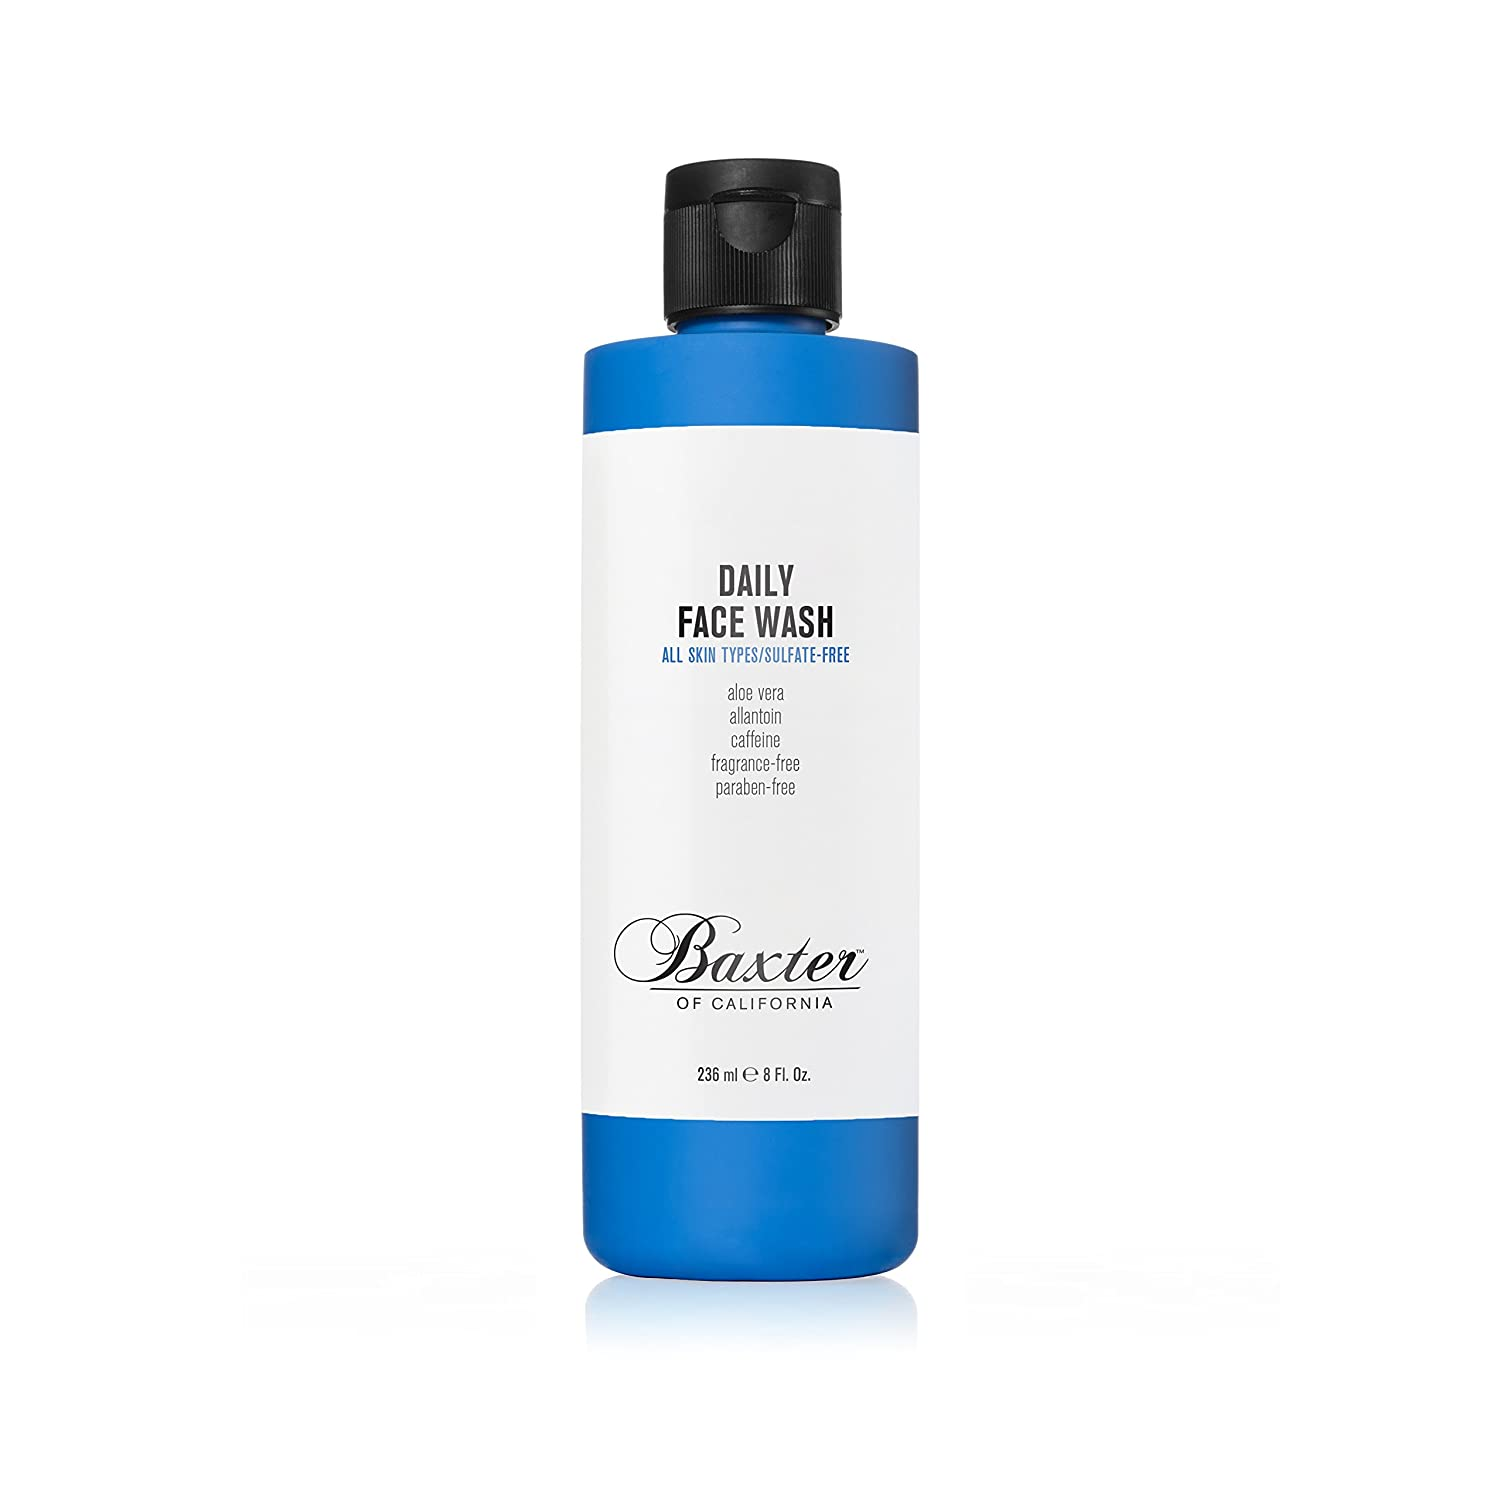 Baxter of California Daily Face Wash for Men